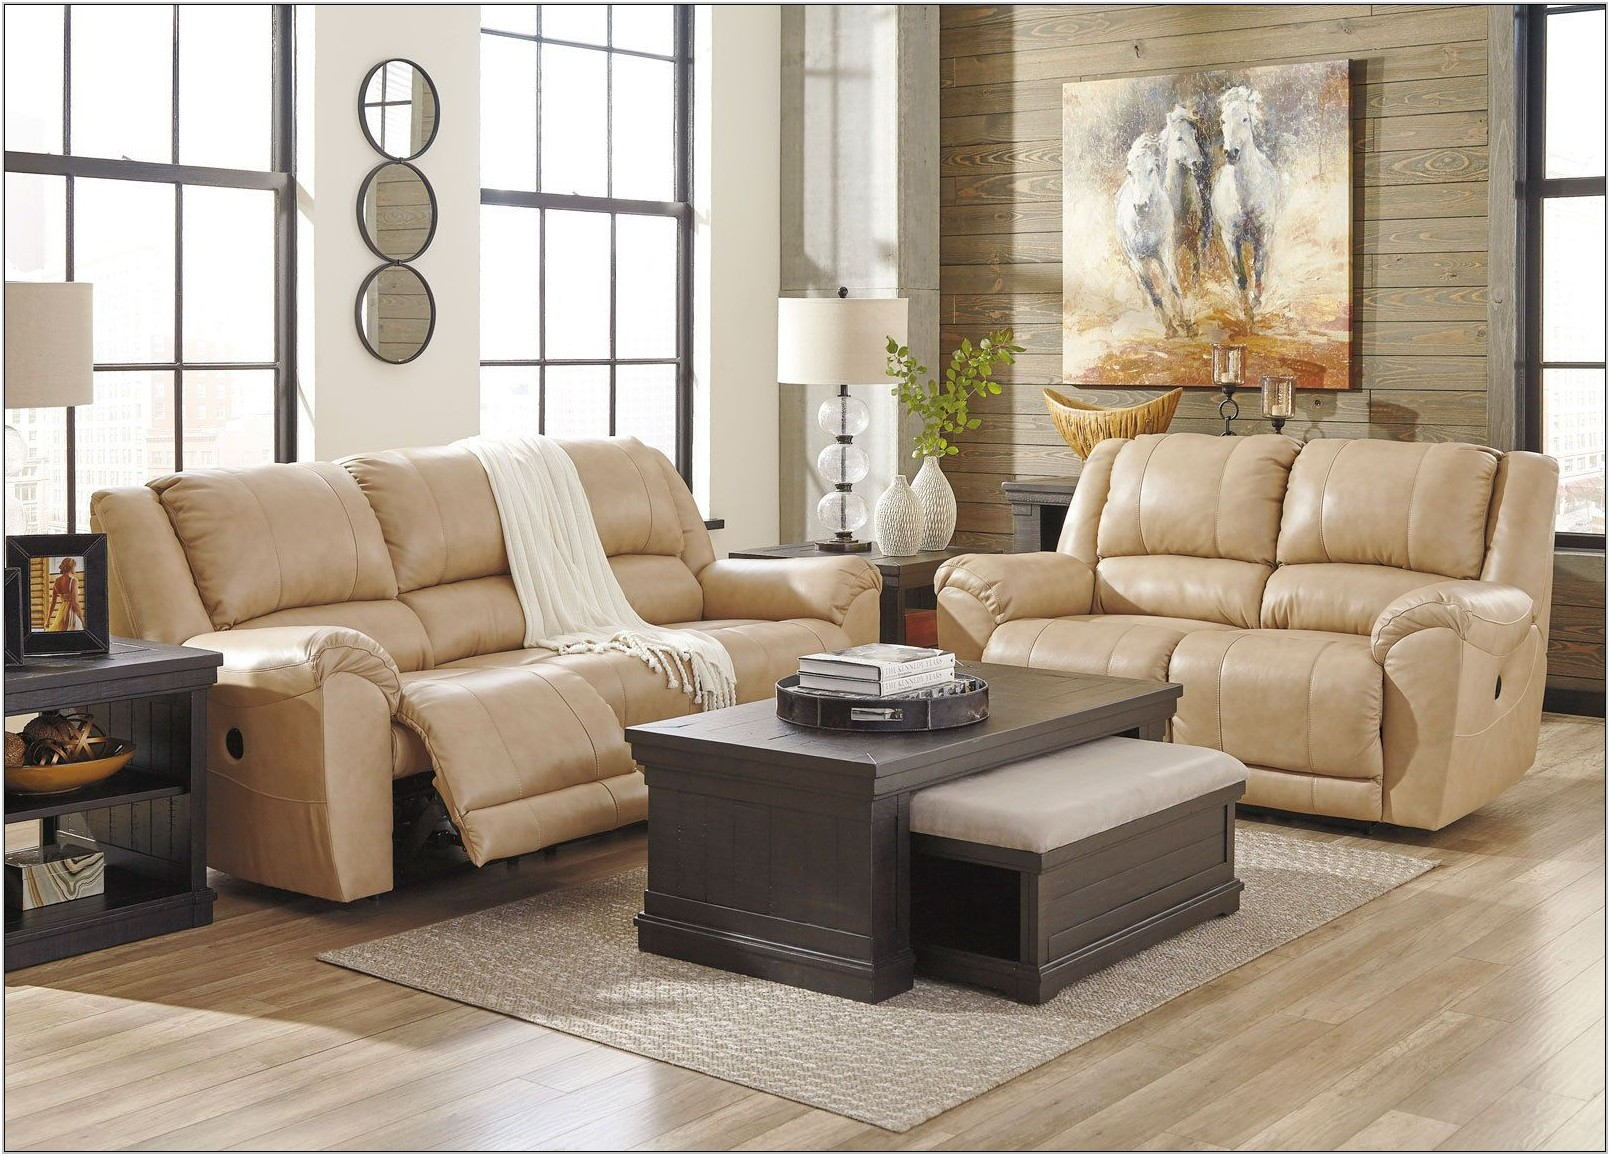 Reclining Sofa Living Room Set